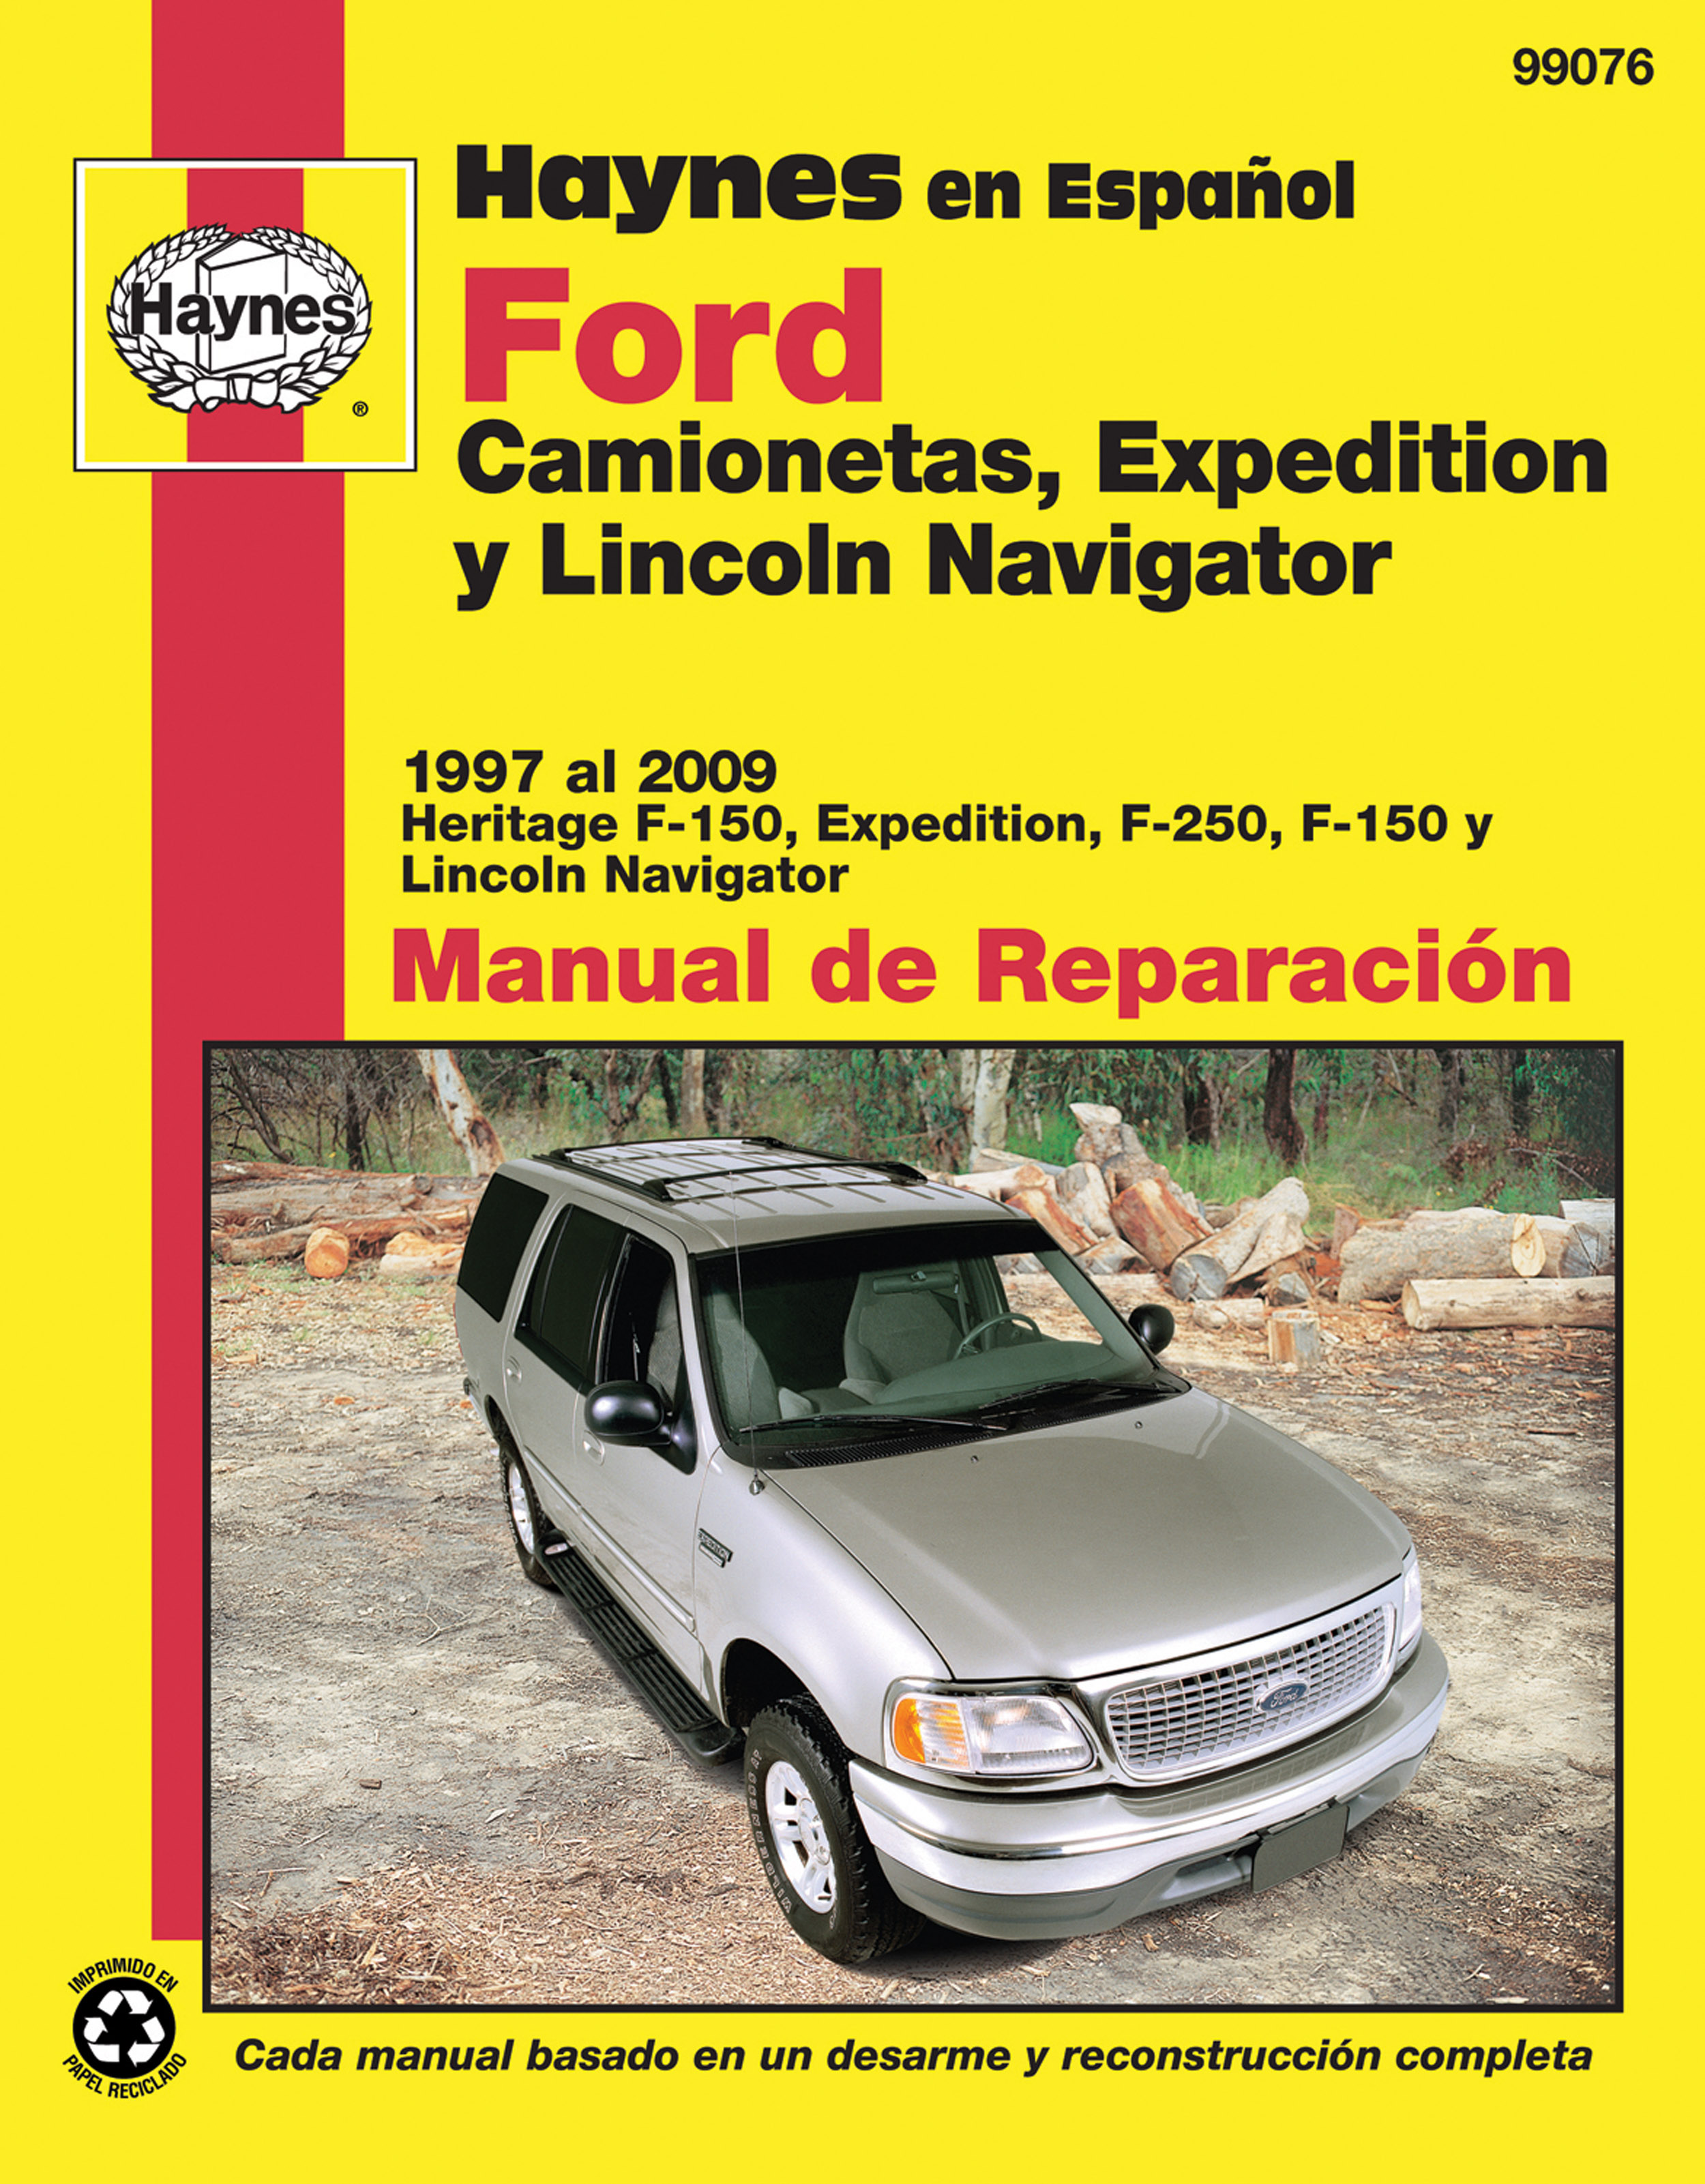 ford camionetas expedition y lincoln navigator ford f 150 1997 rh haynes  com manual ford expedition 1997 español ford expedition 1997 owners manual